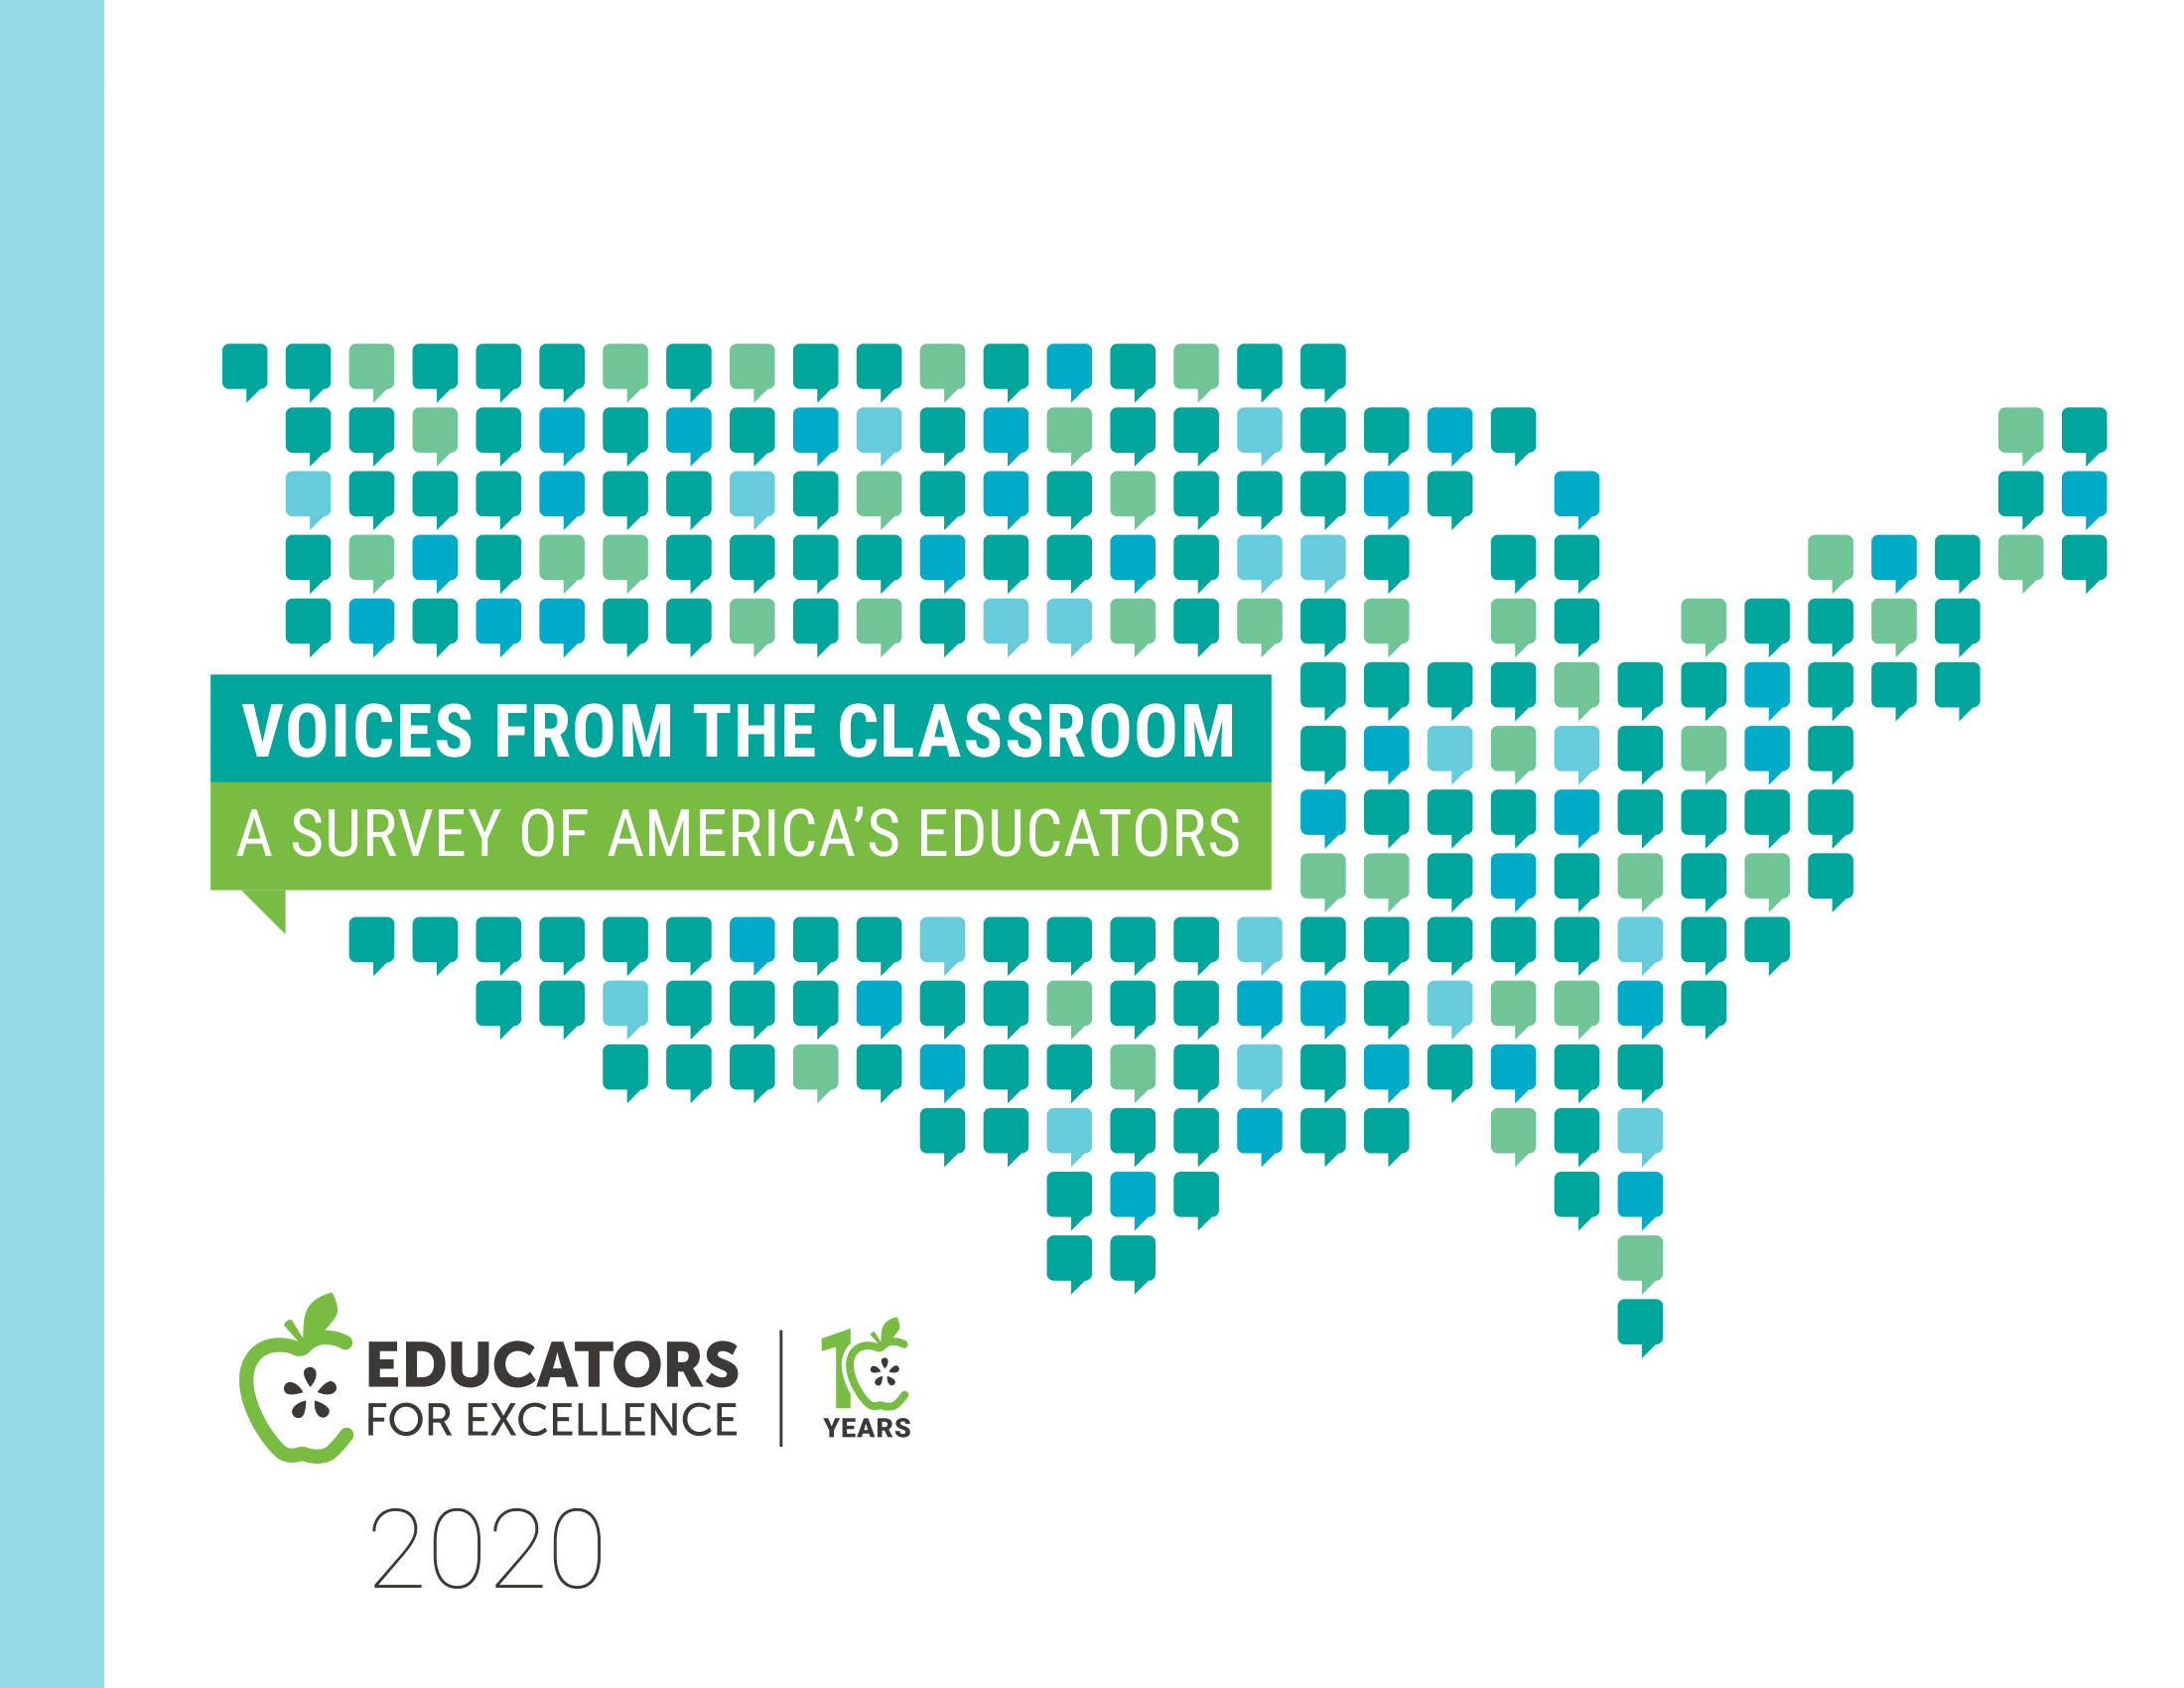 Voices from the Classroom 2020: A Survey of America's Educators